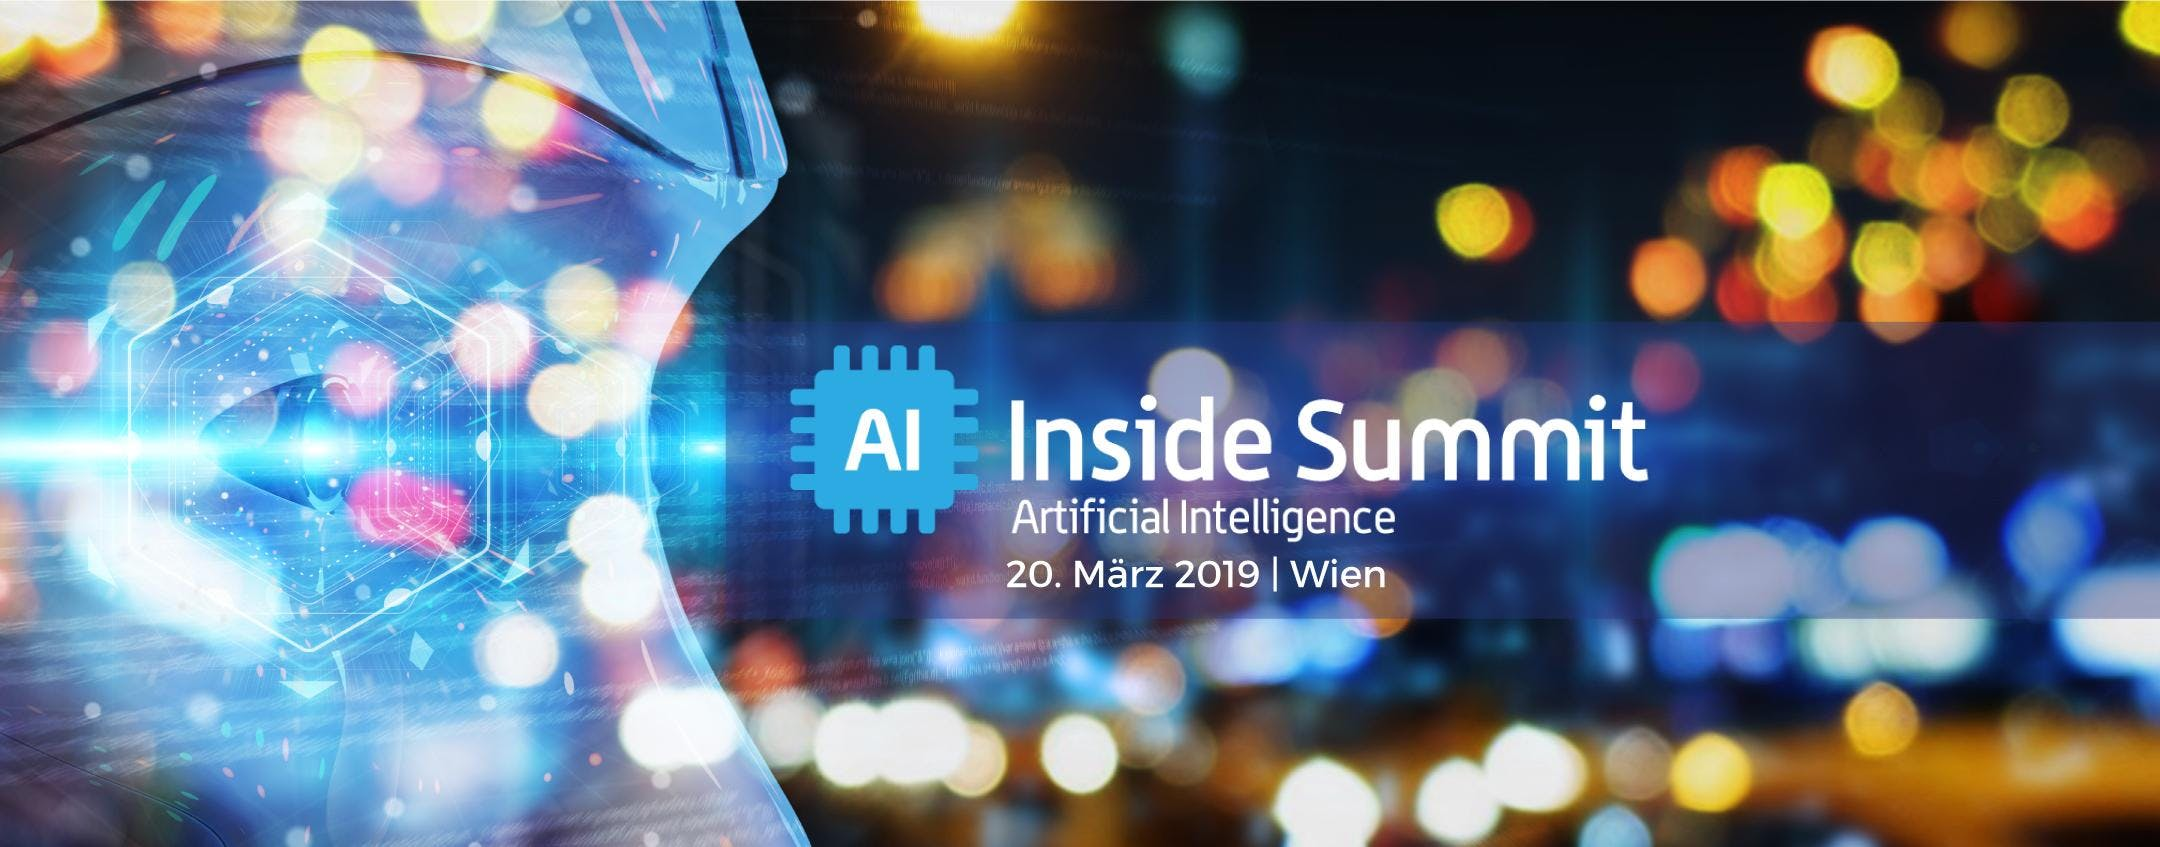 AI Inside Summit 2019